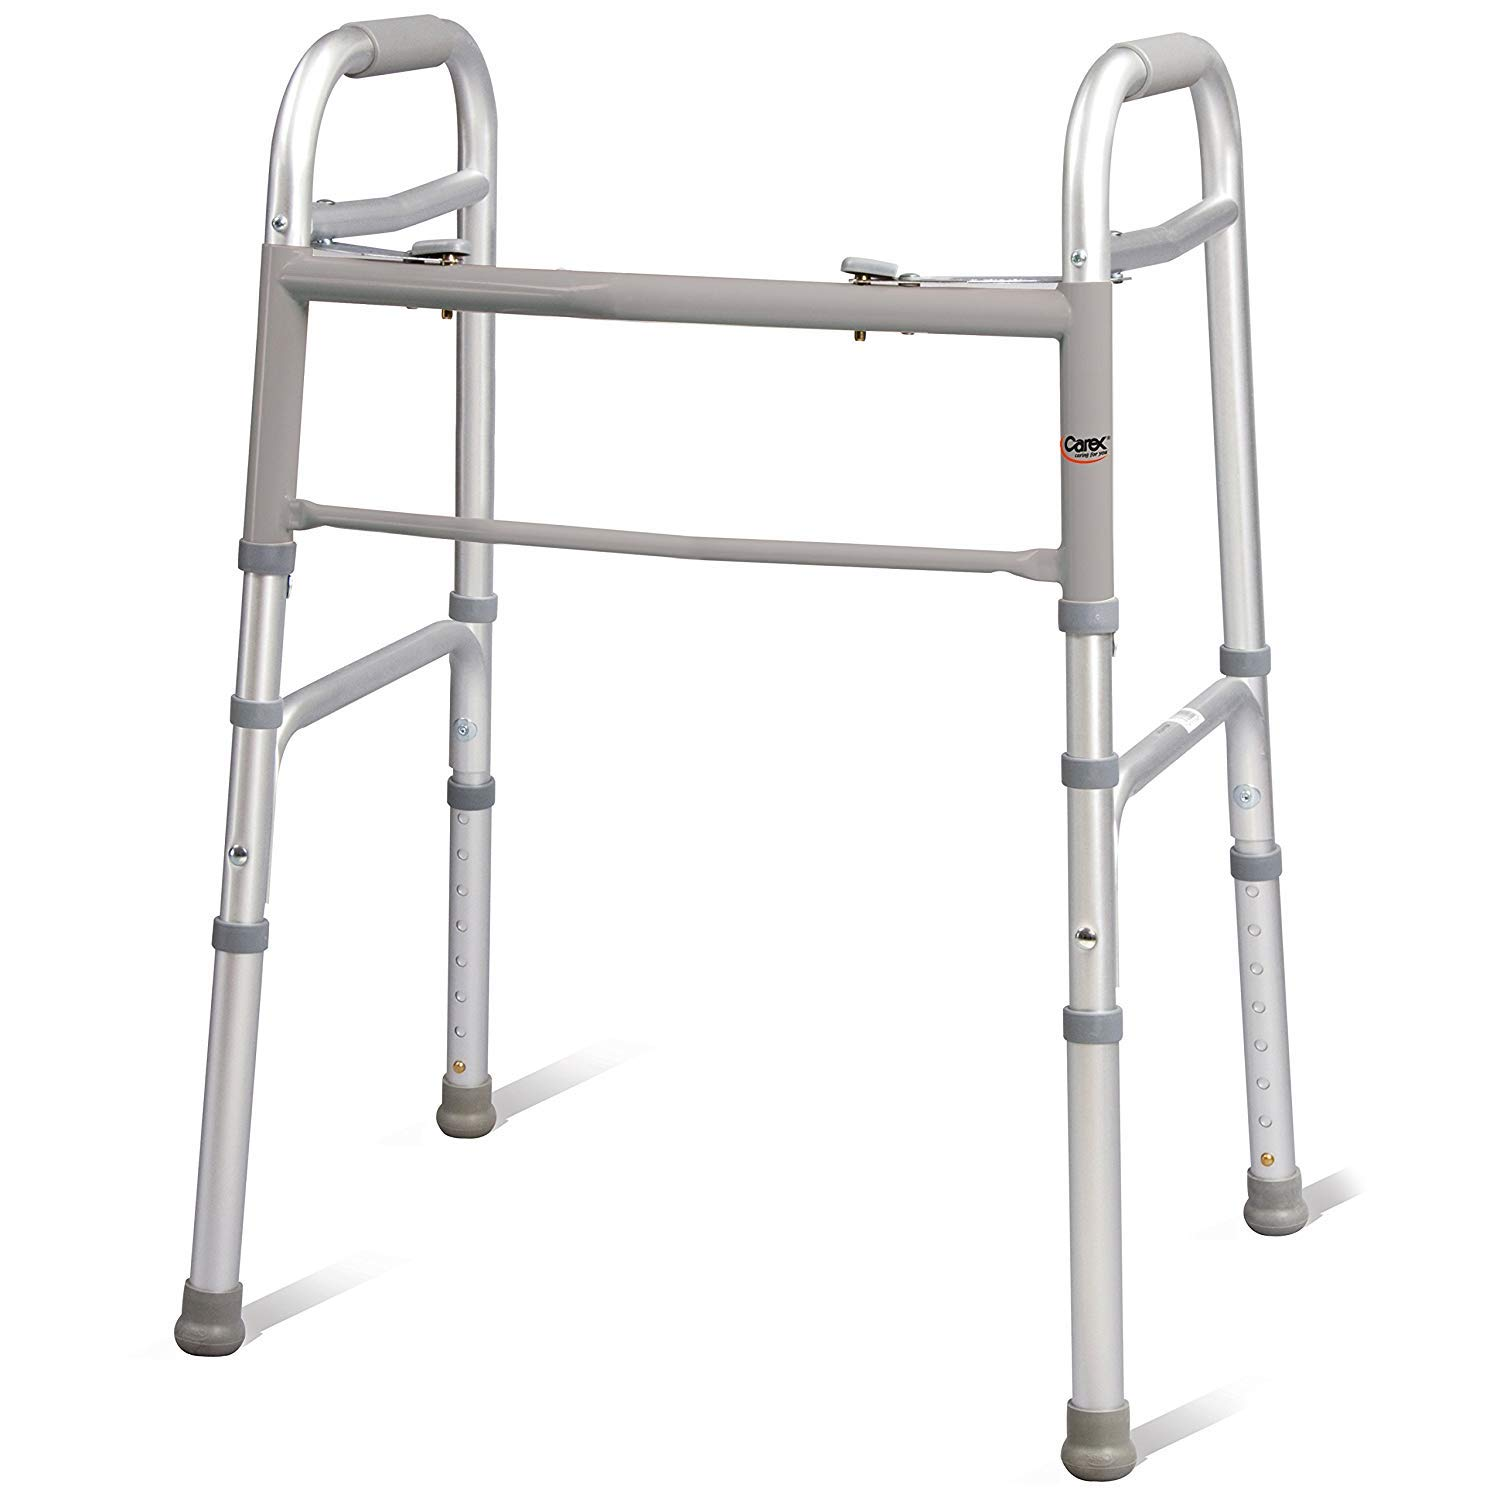 Carex Folding Walker for Seniors - Adult Walker - Portable Medical Walker with Adjustable Height, 30-37 Inches by Carex